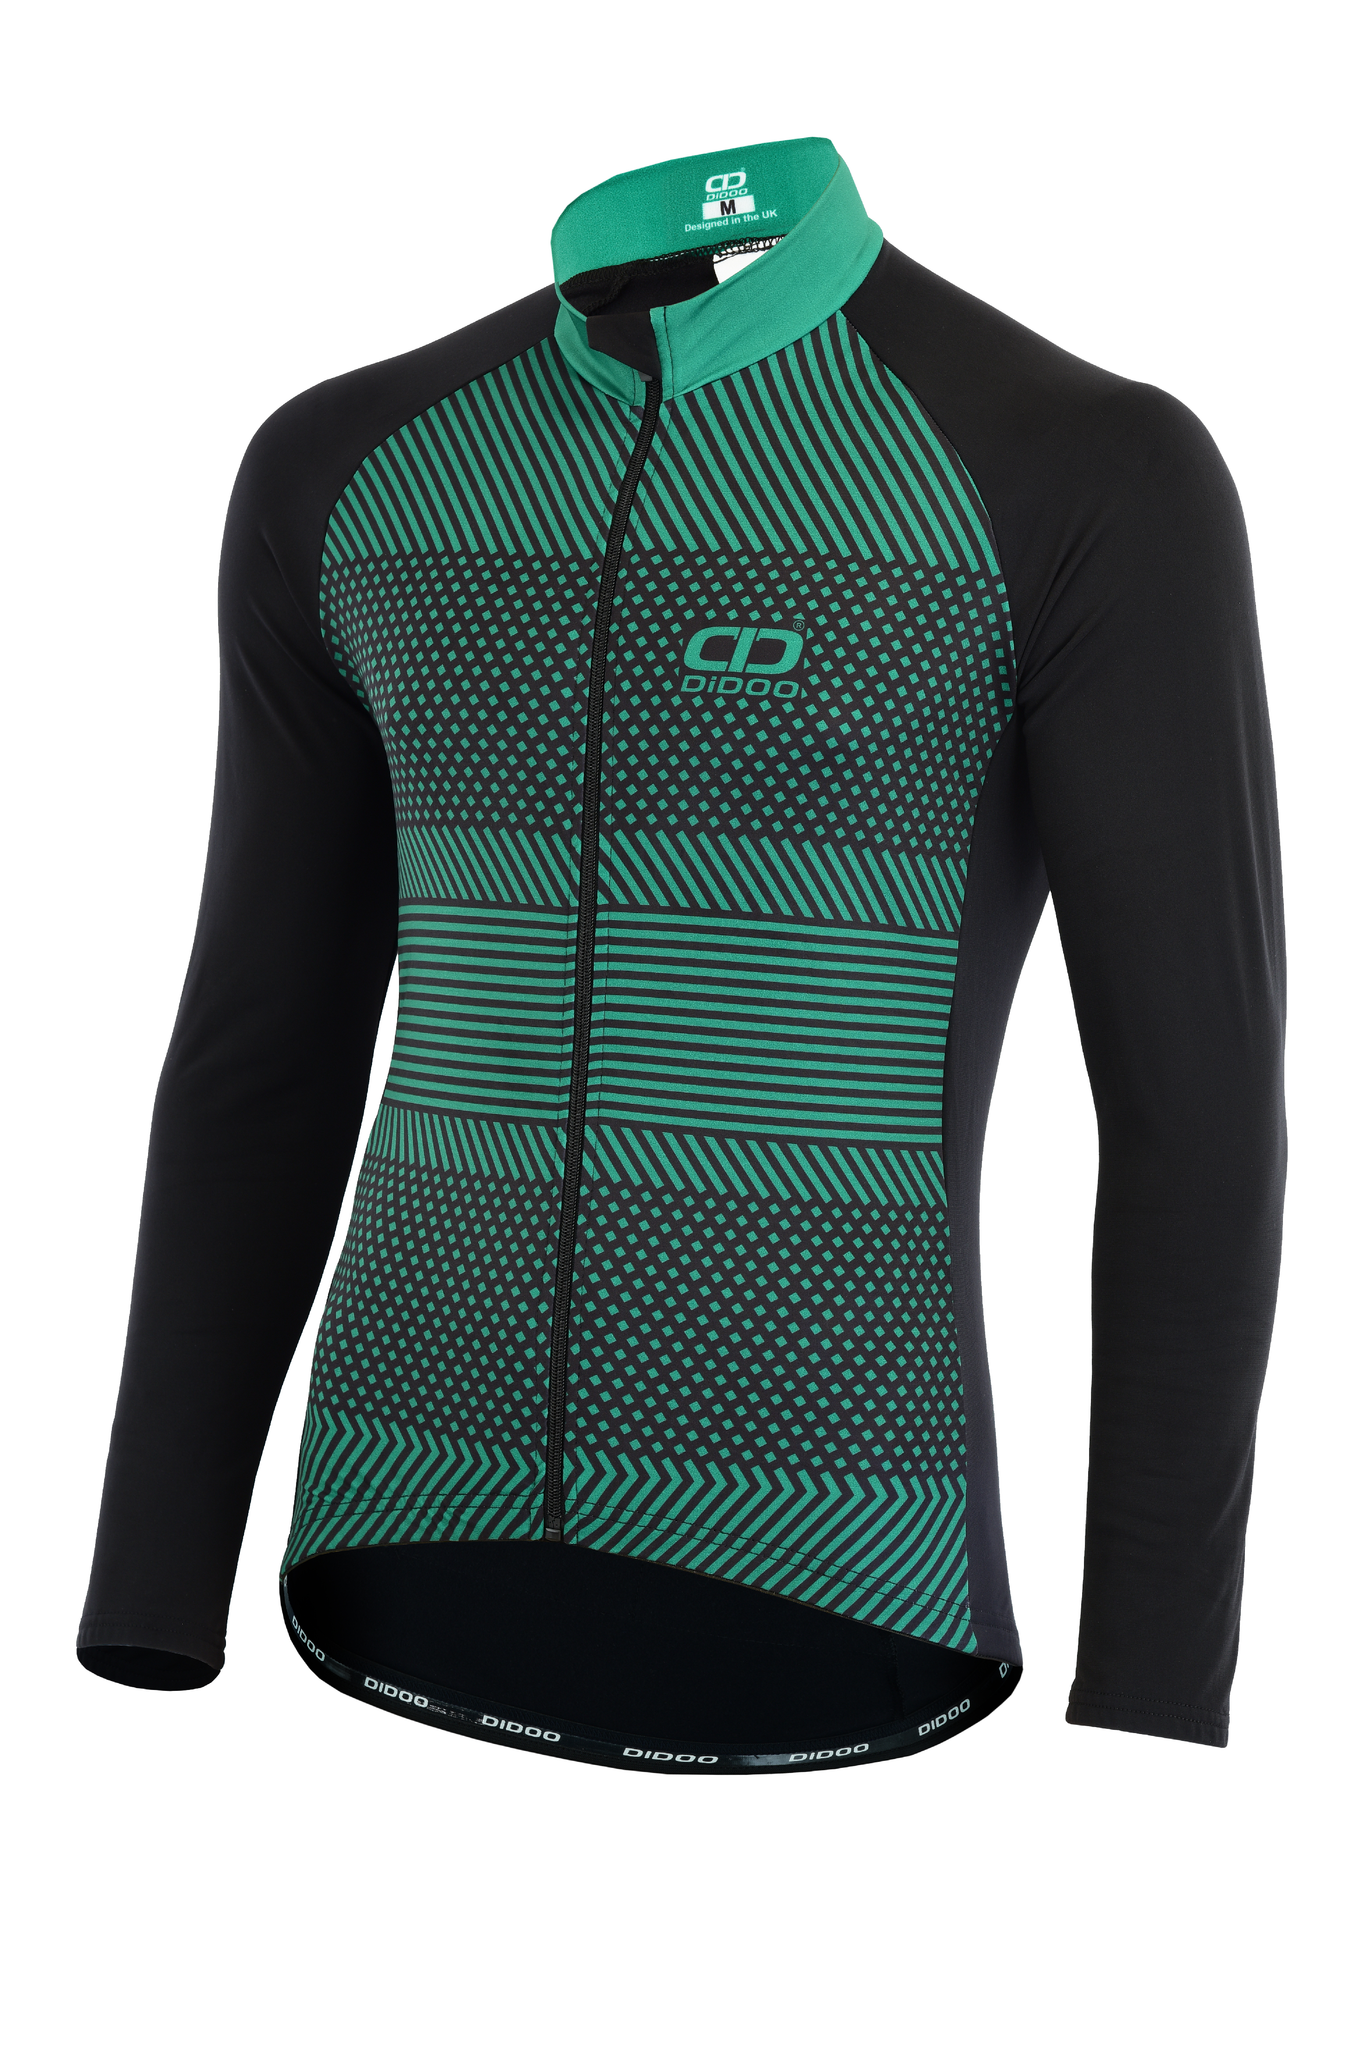 DiDOO Men's Pro long sleeve winter cycling jersey Black and Green